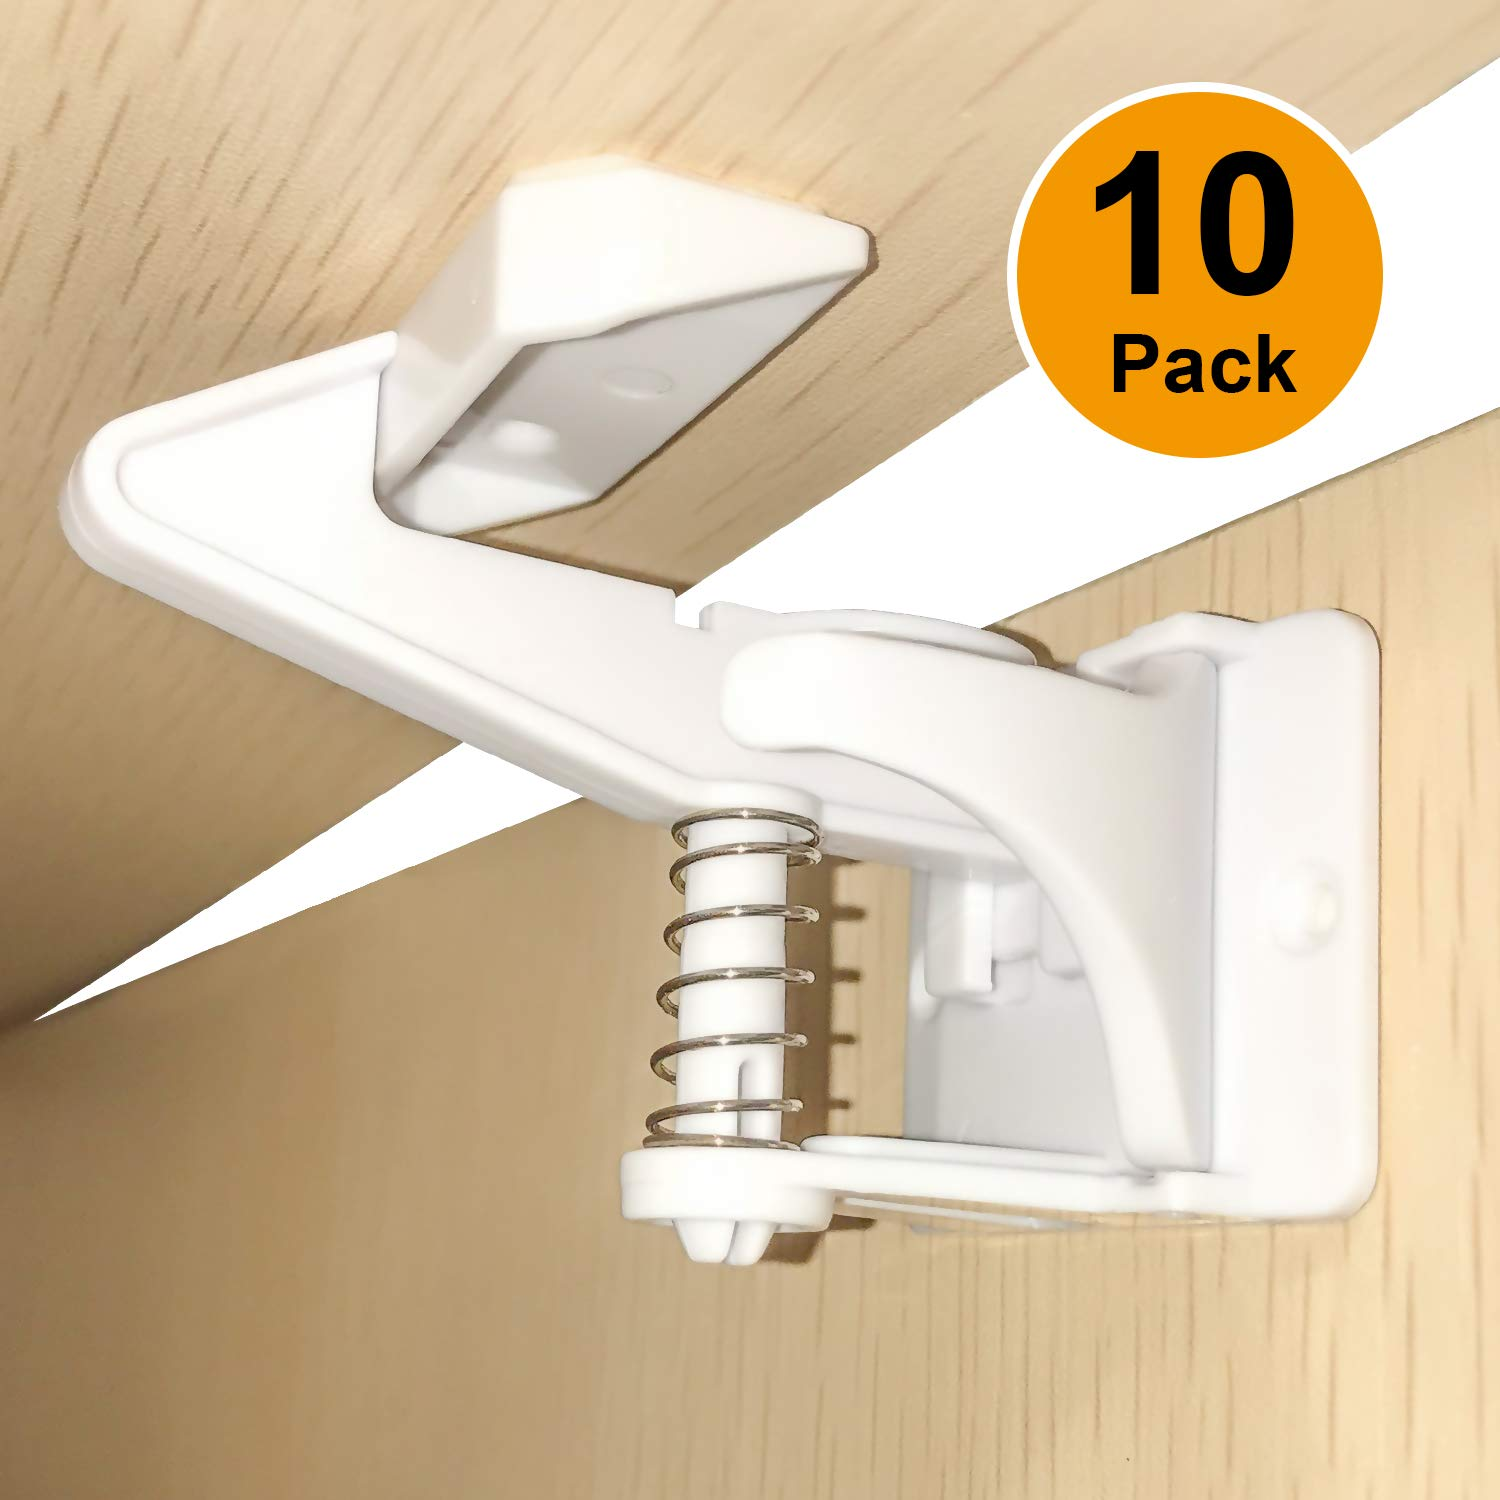 Cabinet Locks Child Safety, Carttiya 3M Adhesive Spring Loaded Latches, Easy Installation, No Tools or Drills Needed, Invisible Design with Buckles Fit Most Cabinets, Drawers and Closets, White